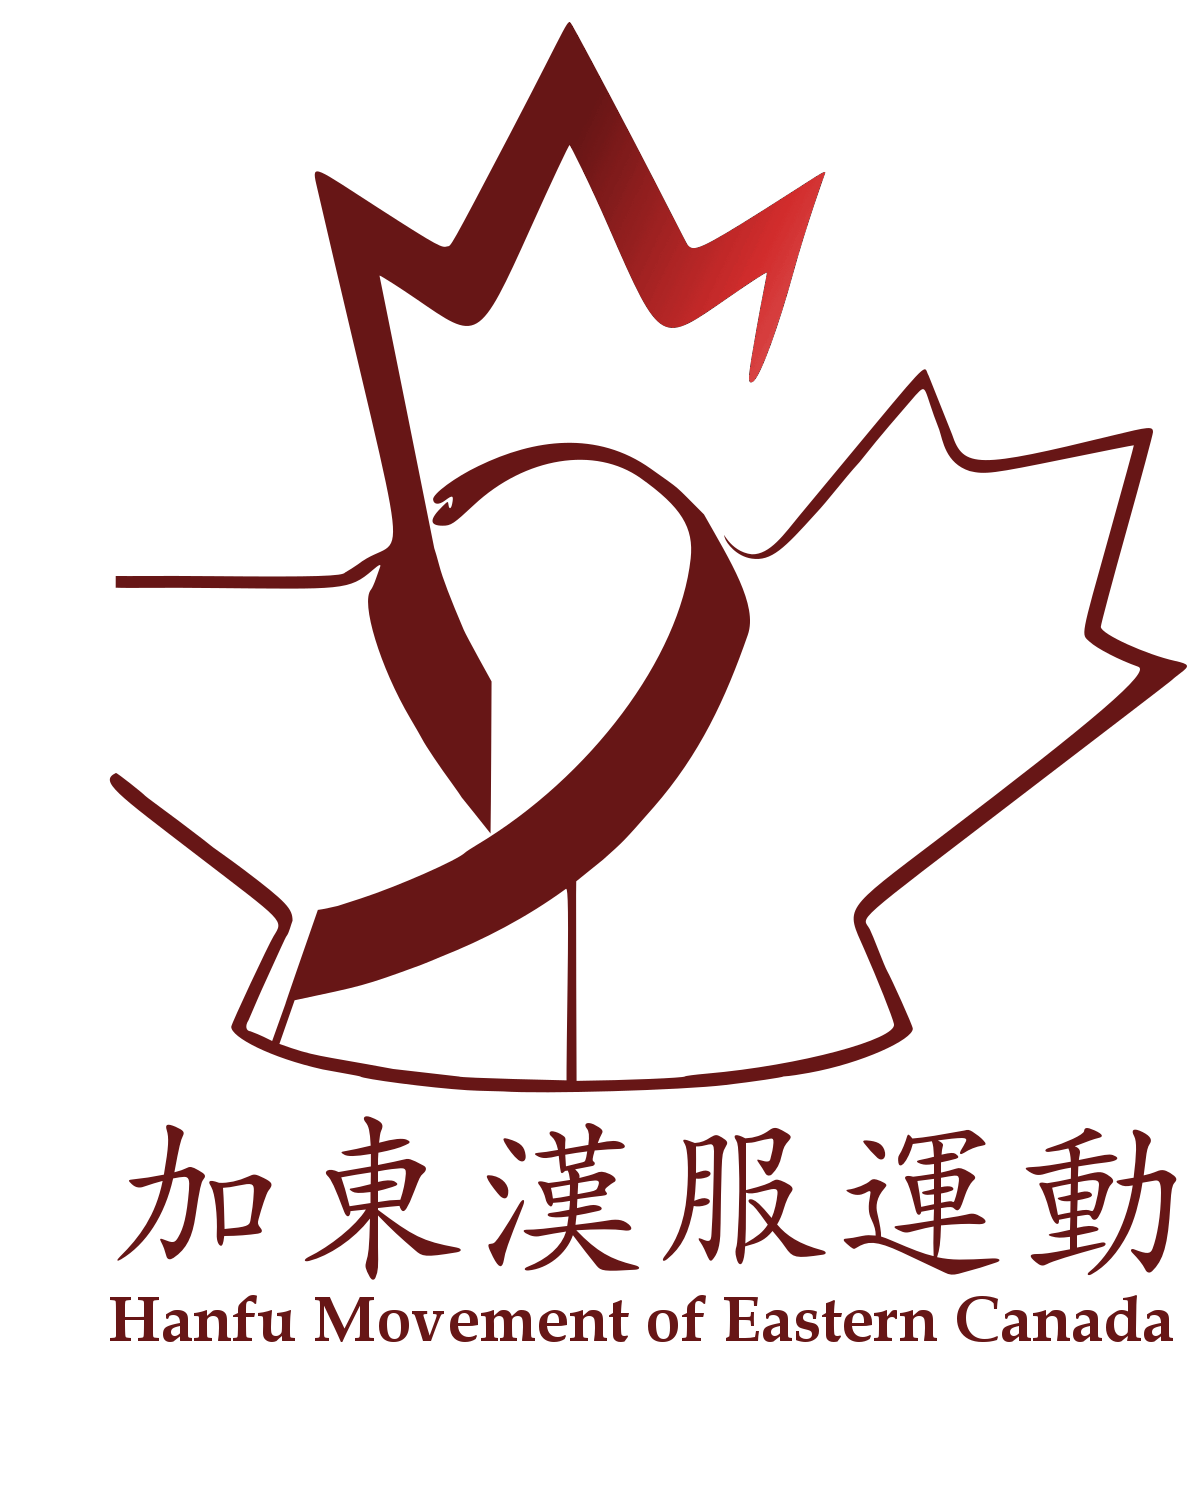 Hanfu Movement of Eastern Canada